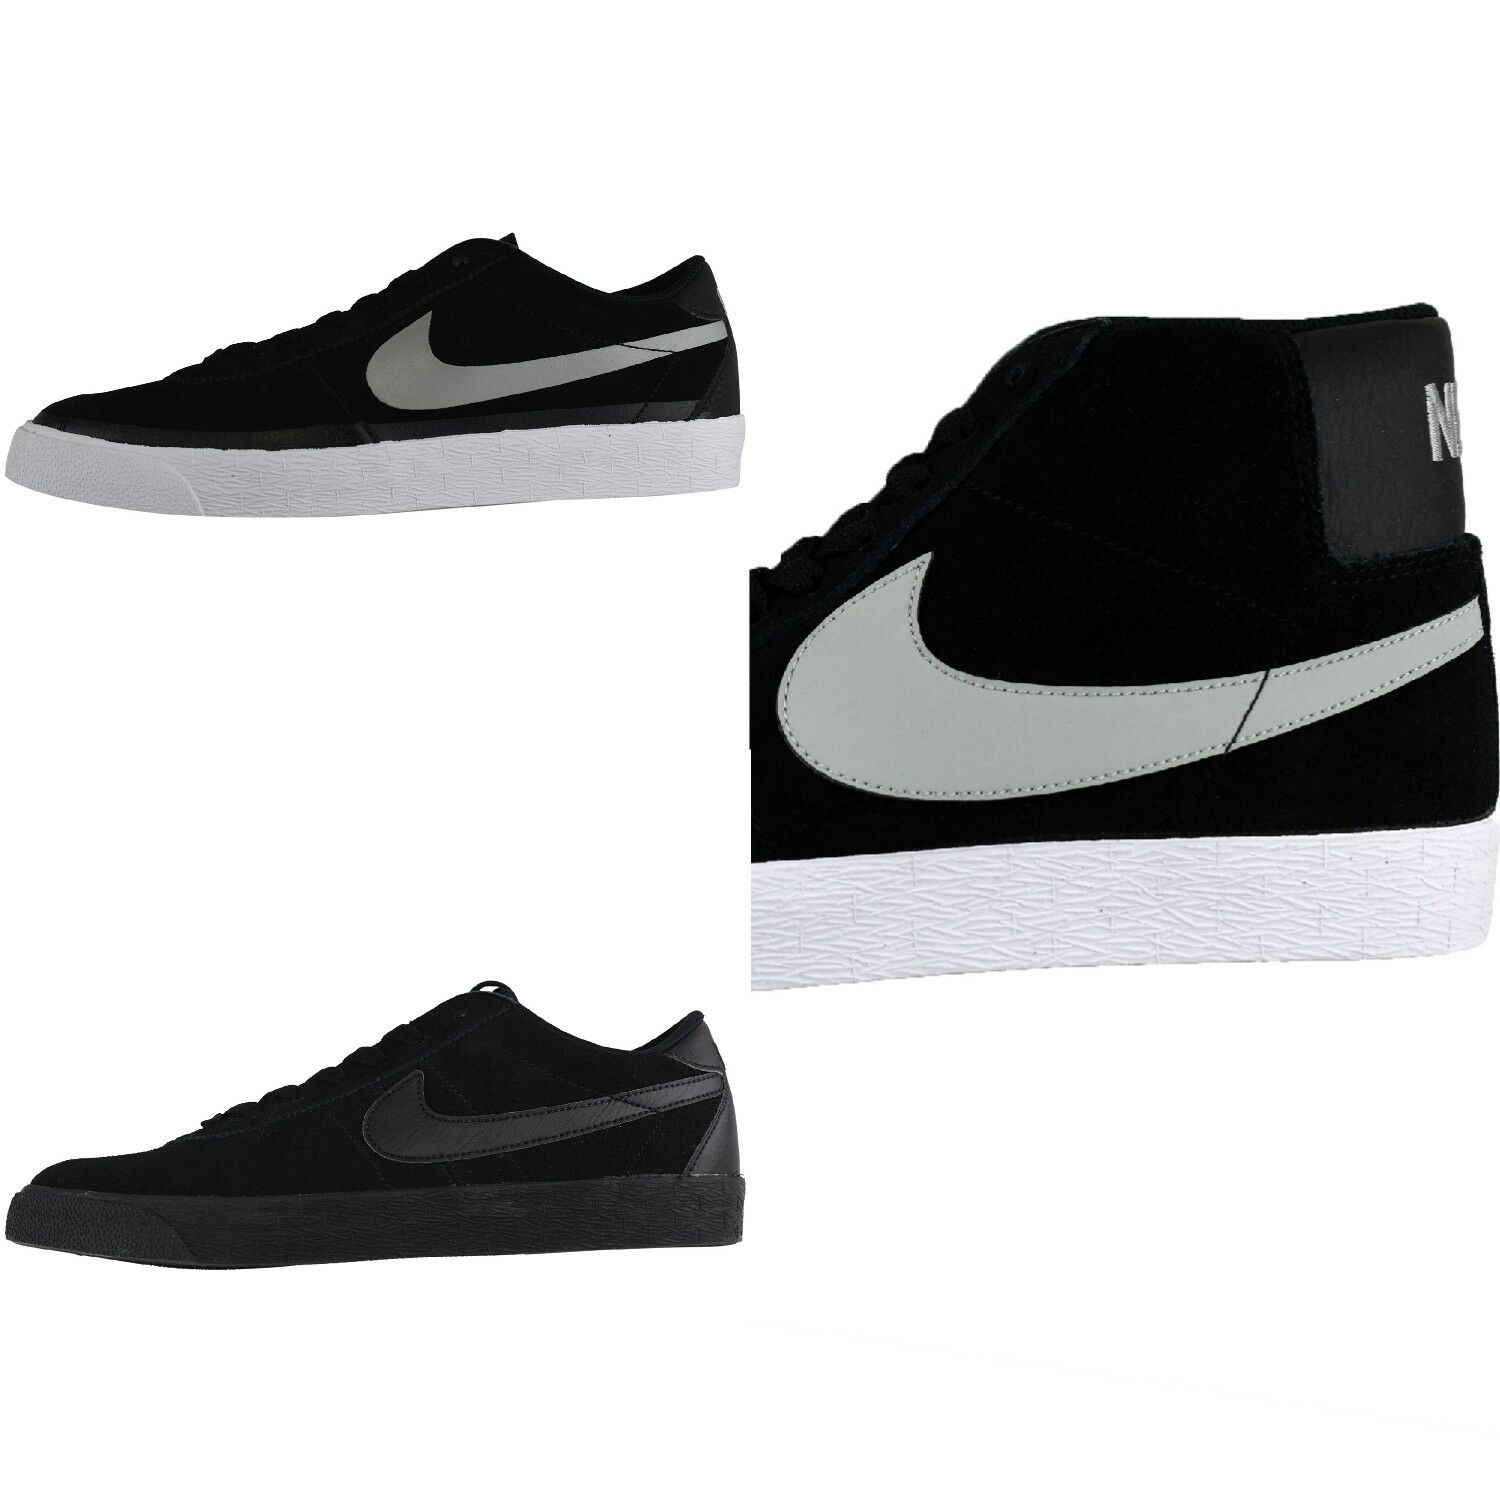 NIKE BRUIN SB PREMIUM SE Blazer (Special Edition) Trainers Skate Shoe Trainers